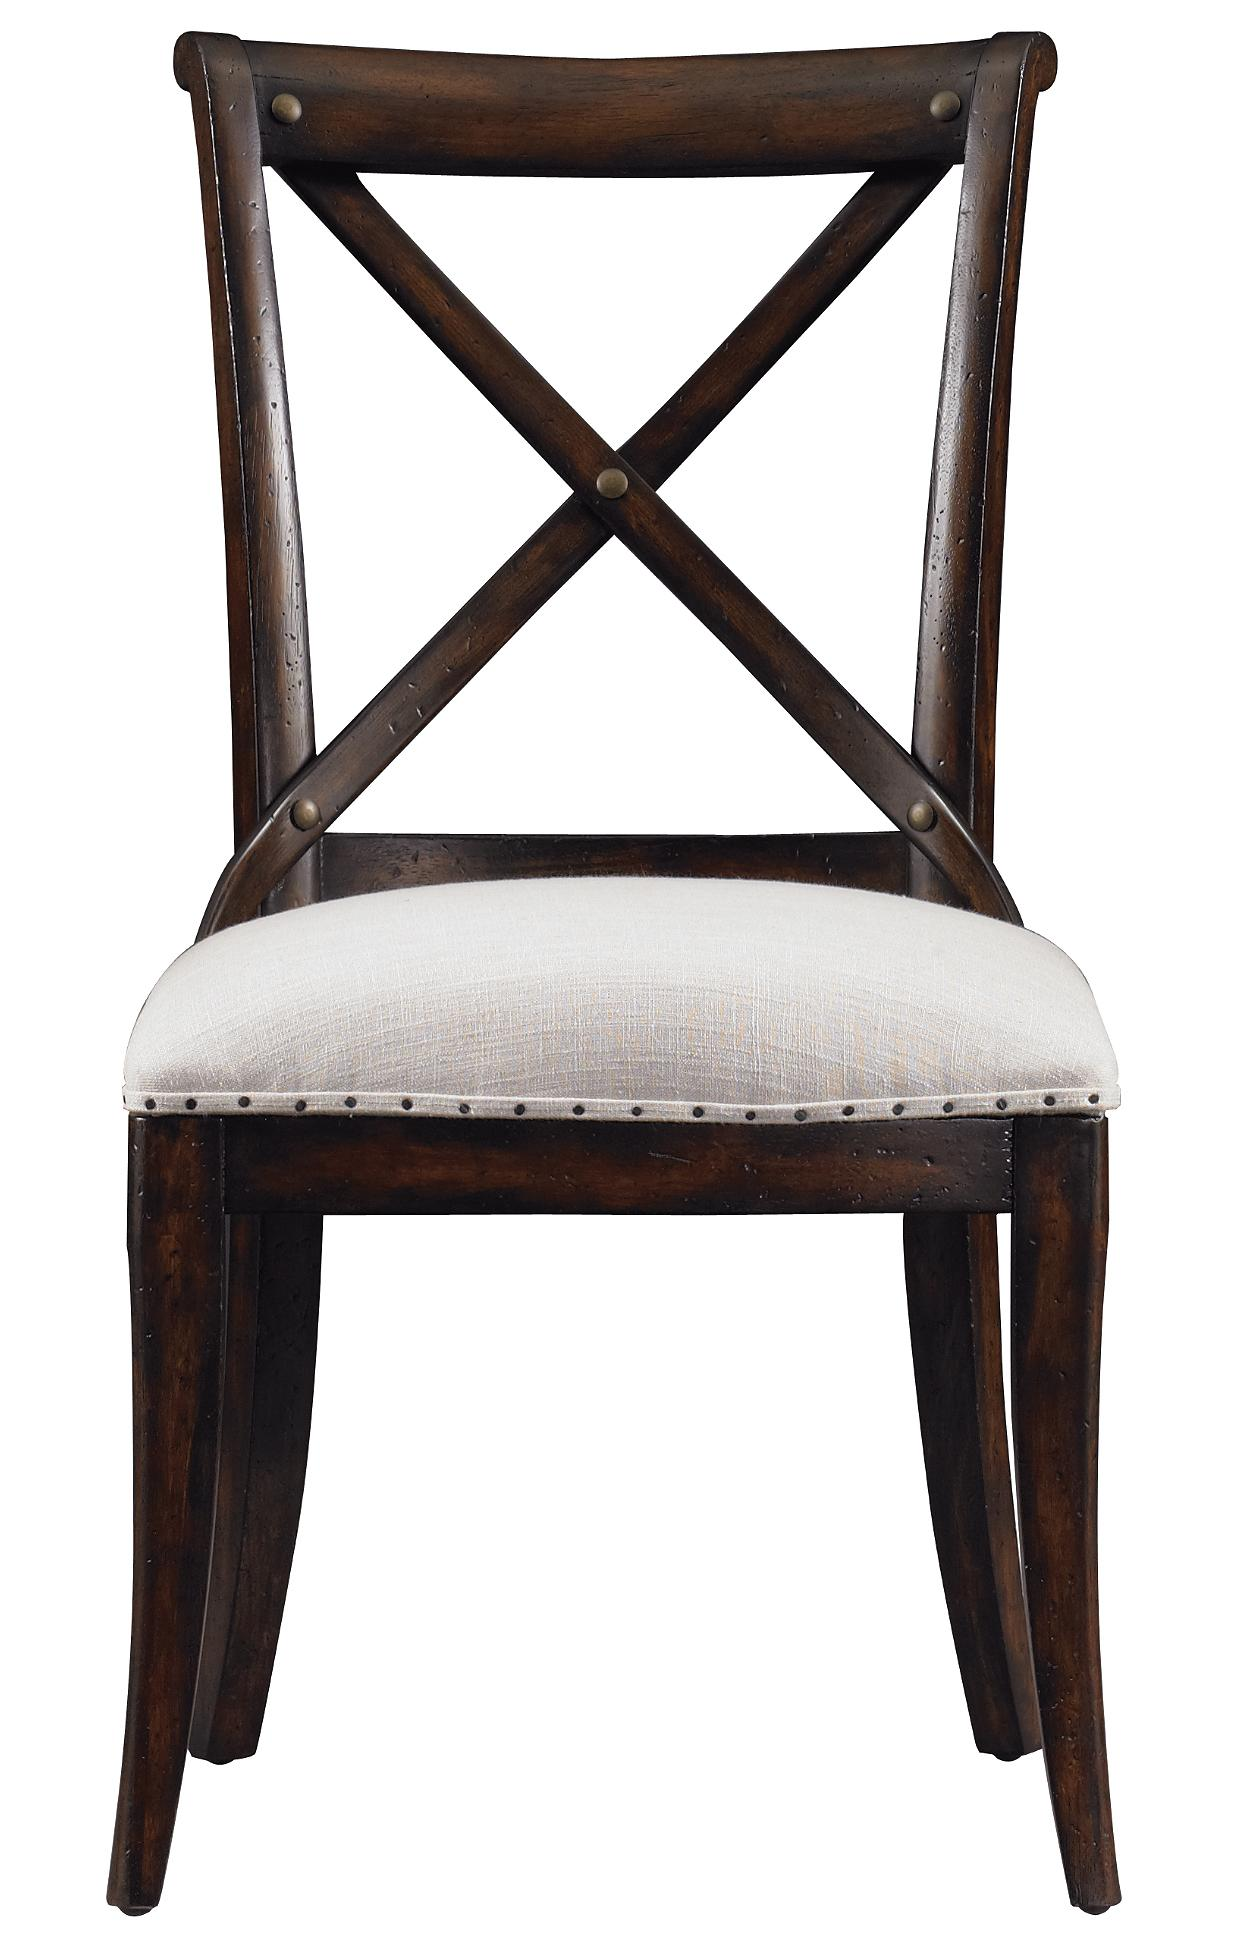 Stanley Furniture European Farmhouse Fairleigh Fields Guest Chair - Item Number: 018-11-60